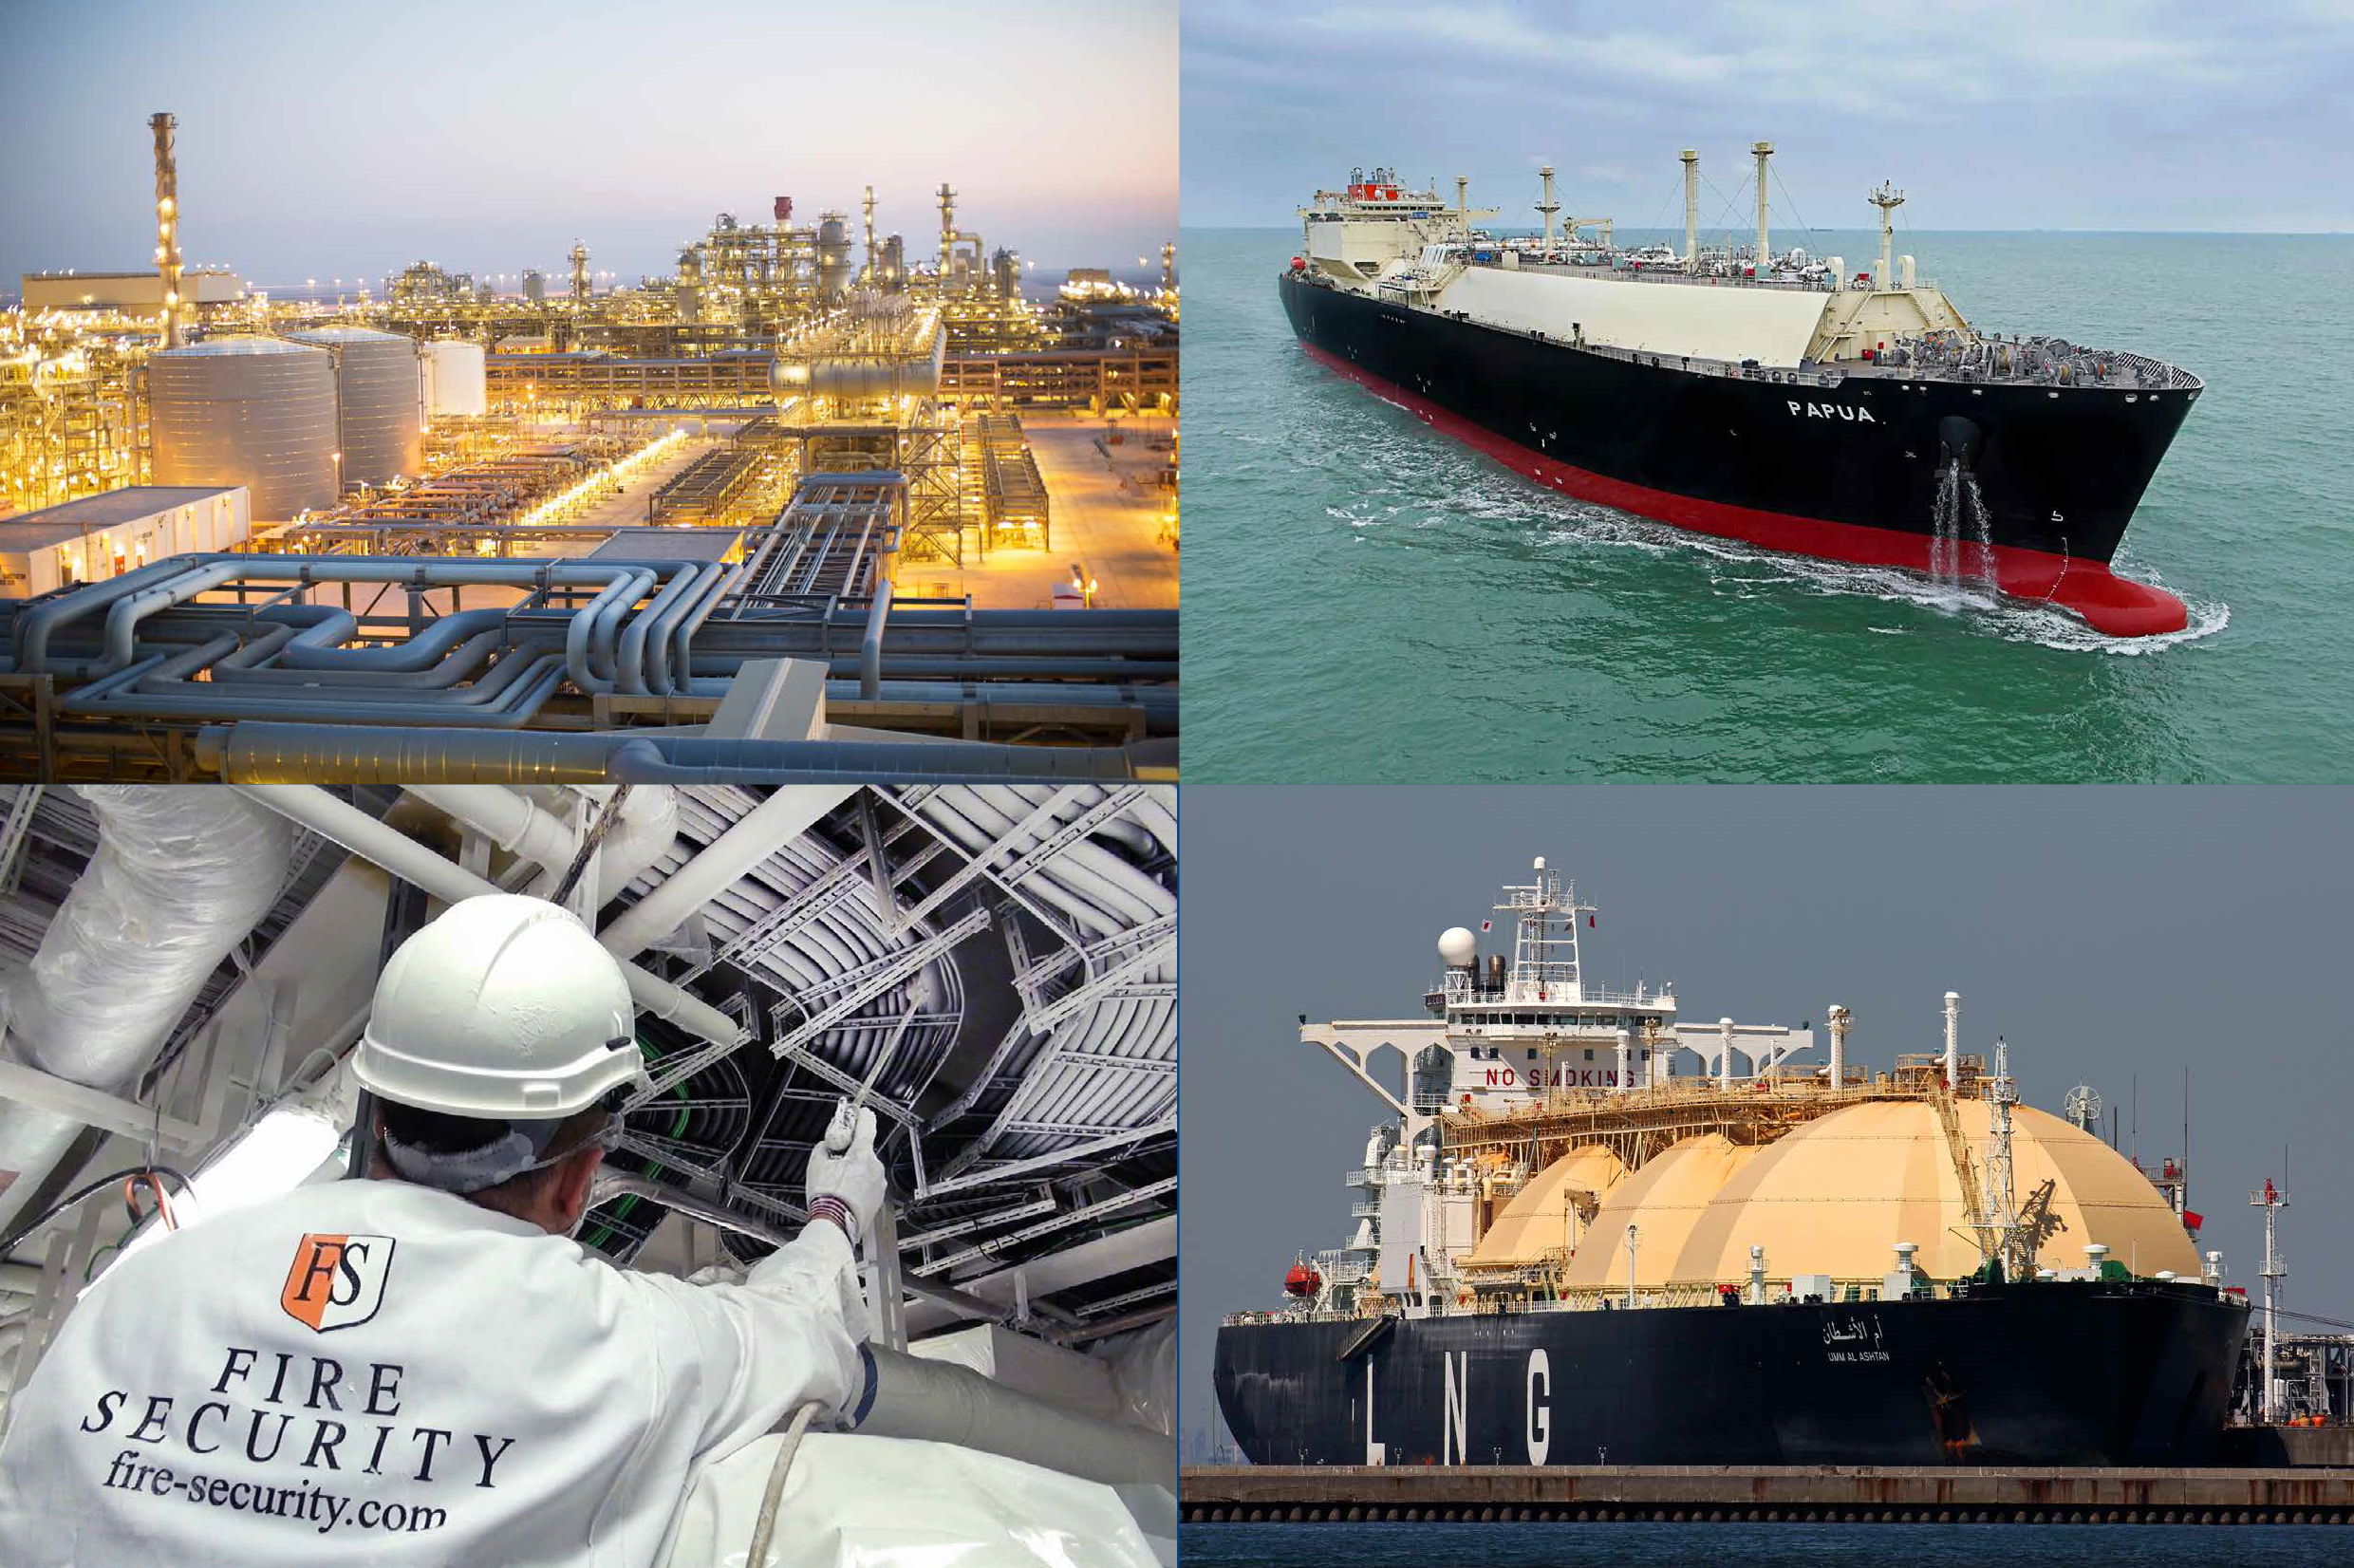 Fire Security protects LNG carriers and refineries